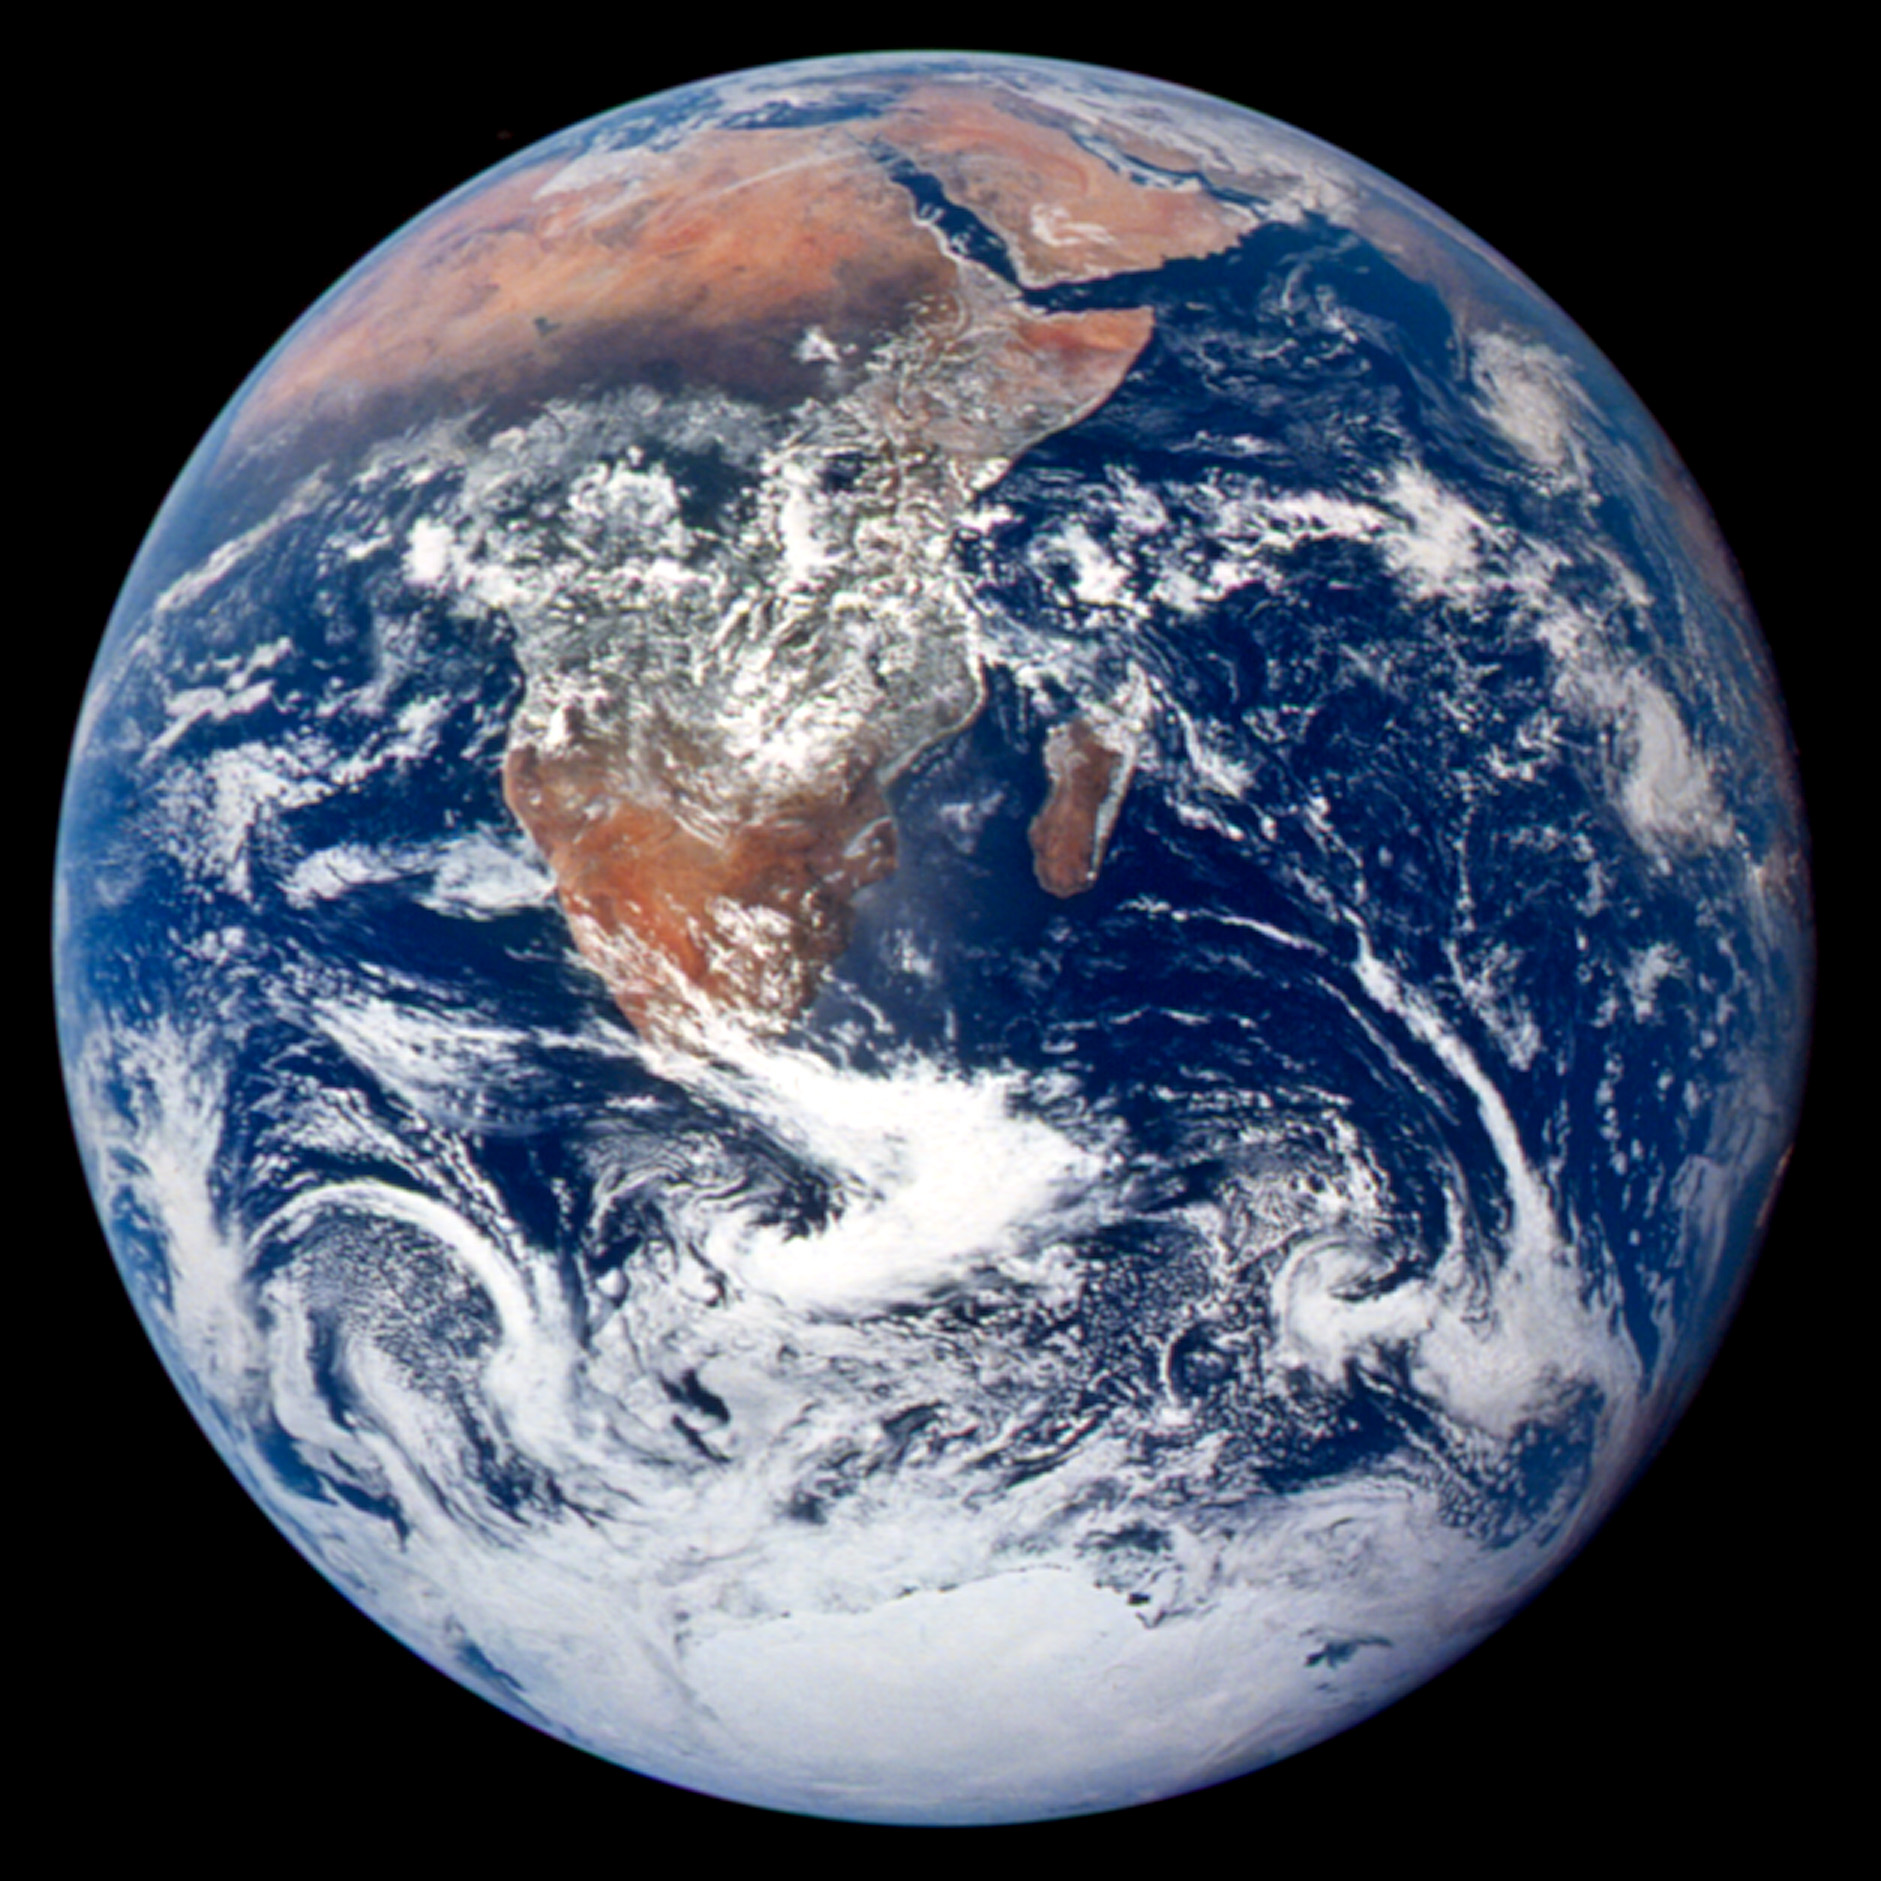 nasa blue marble - photo #4